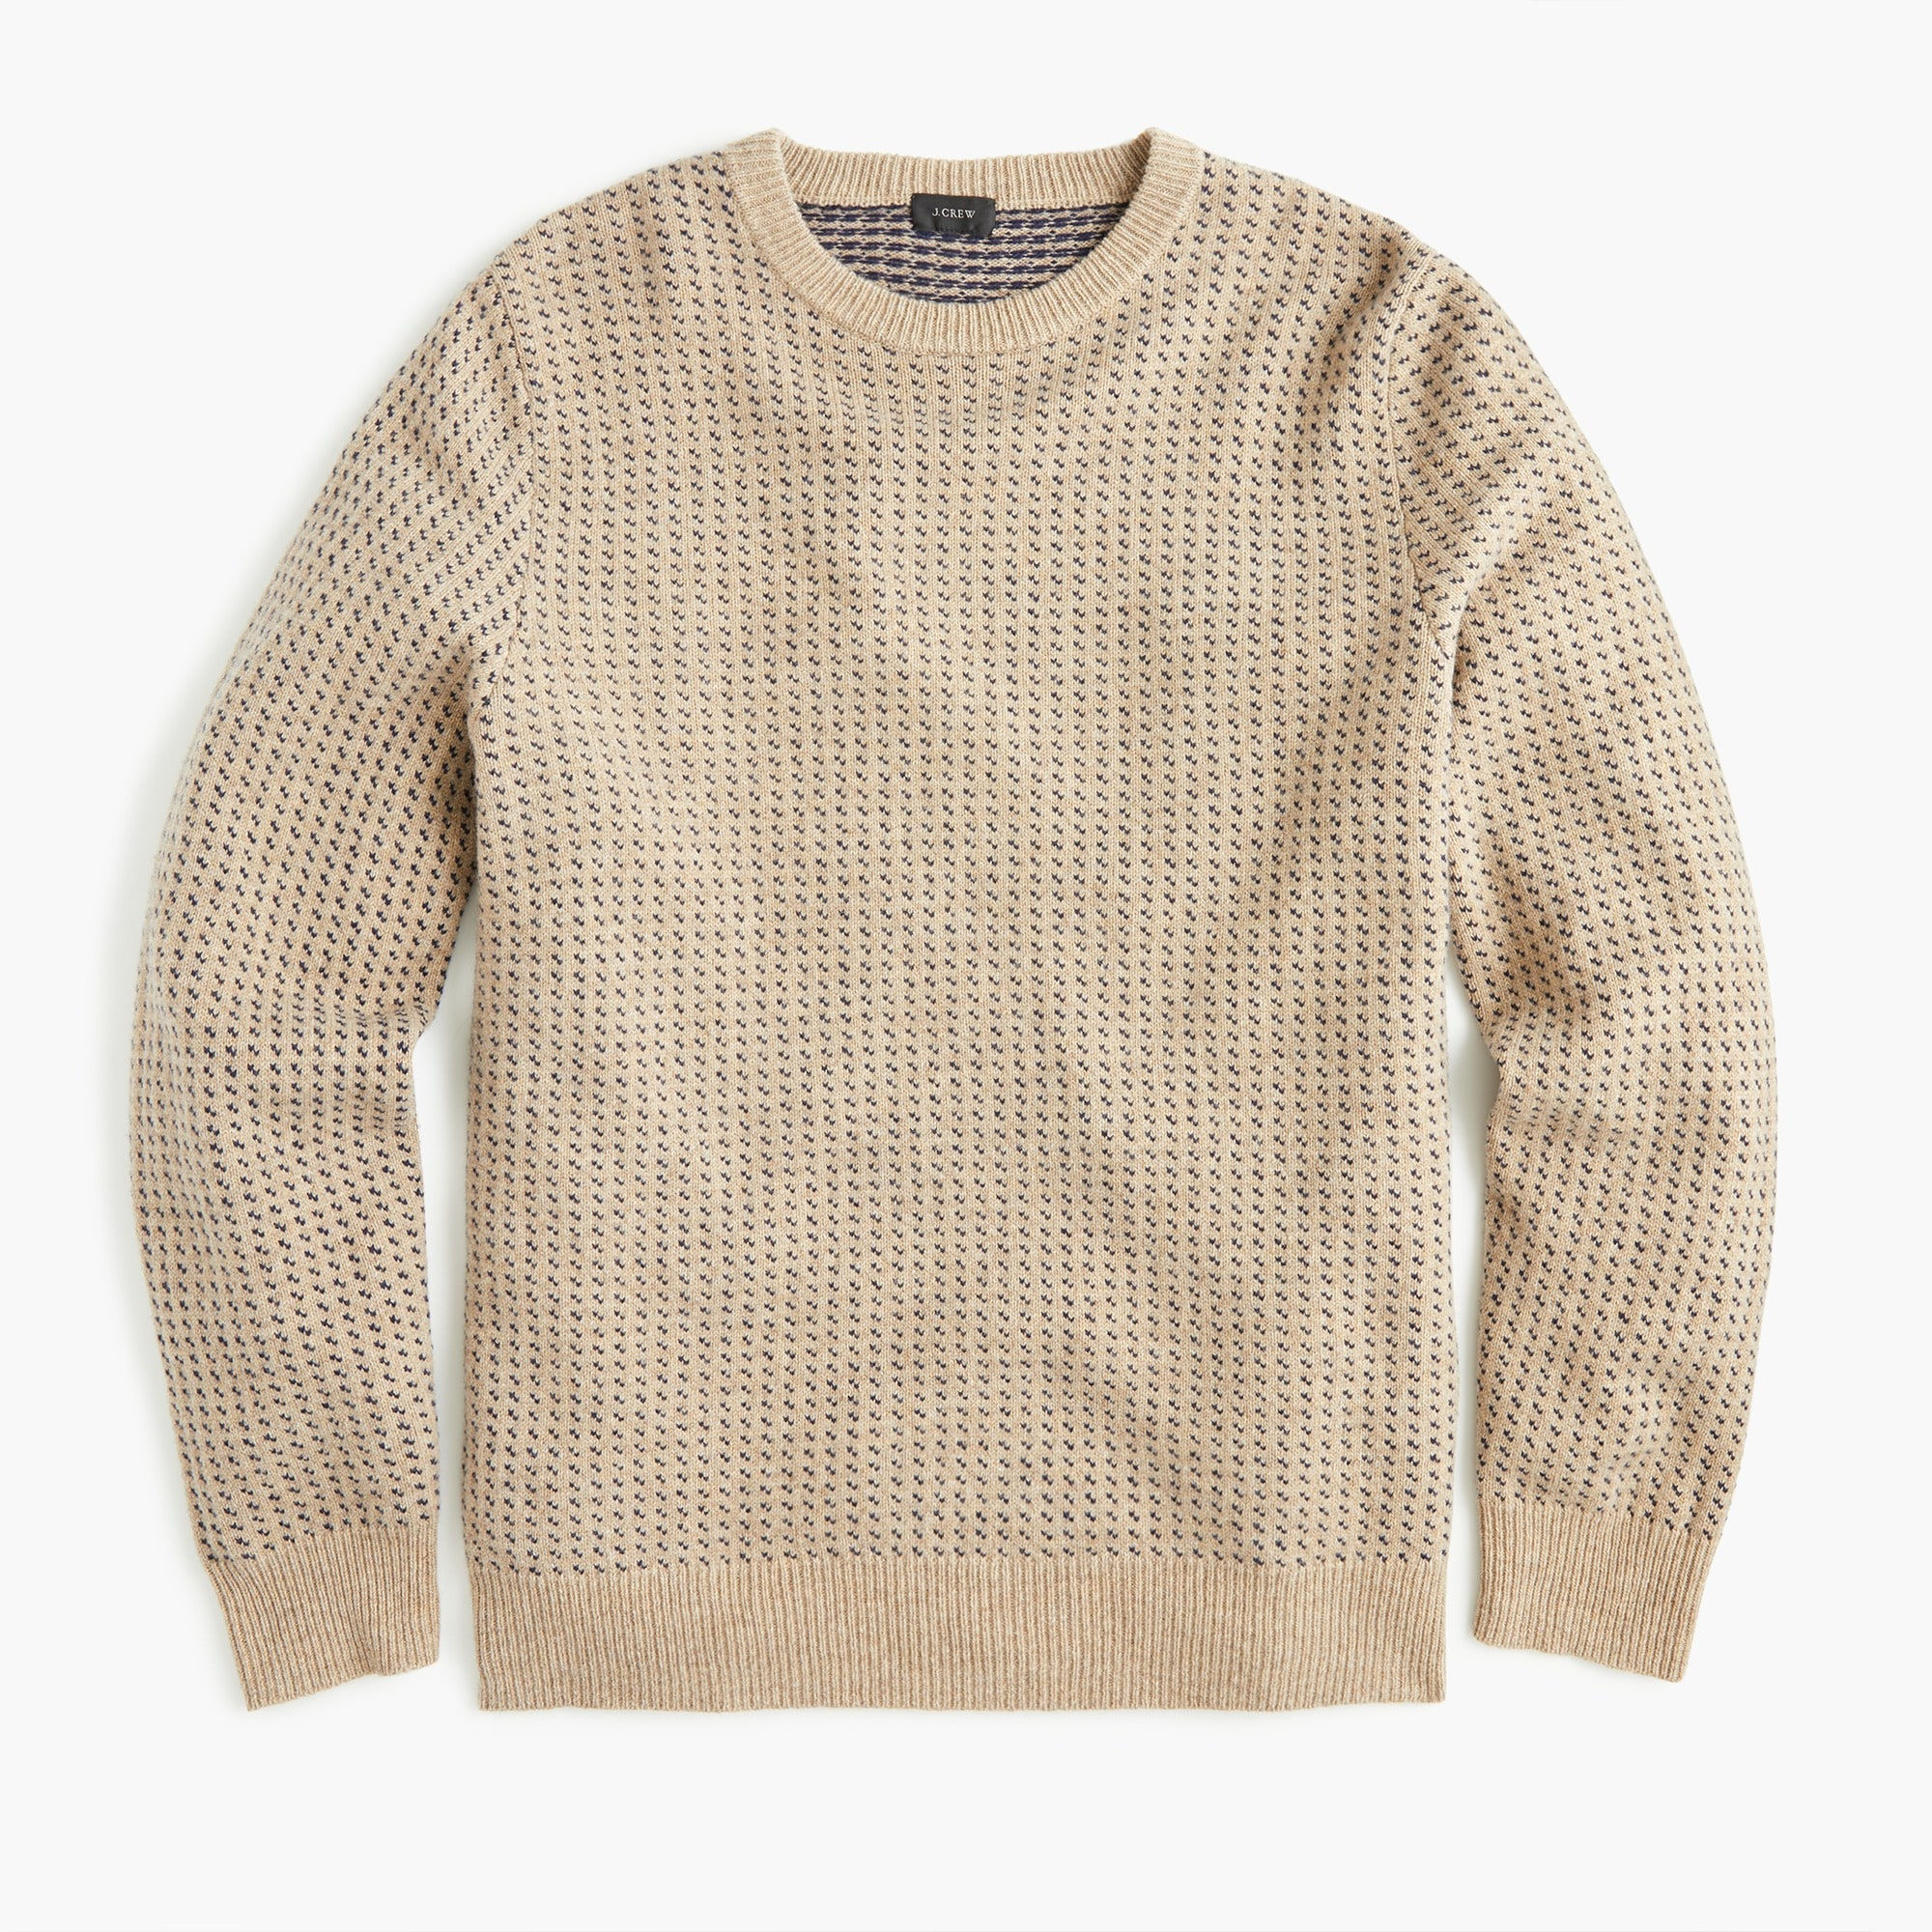 rugged merino wool bird's-eye crewneck sweater : men pullover